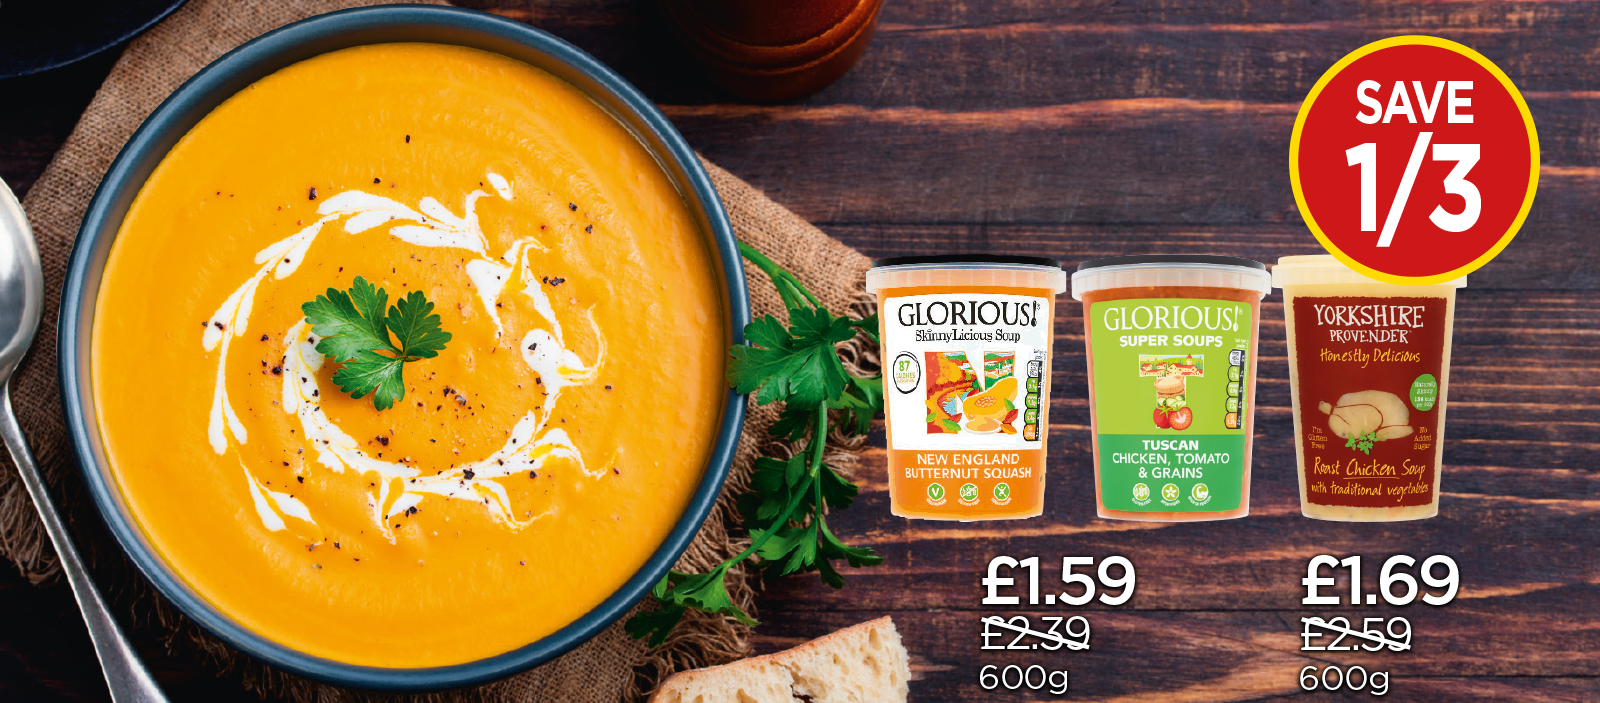 Yorkshire Provendor Roast Chicken & Traditional Vegetable Soup, Glorious Tuscan Chicken & Orzo Soup, Glorious New England Butternut Squash Soup - Save 1/3 at Budgens